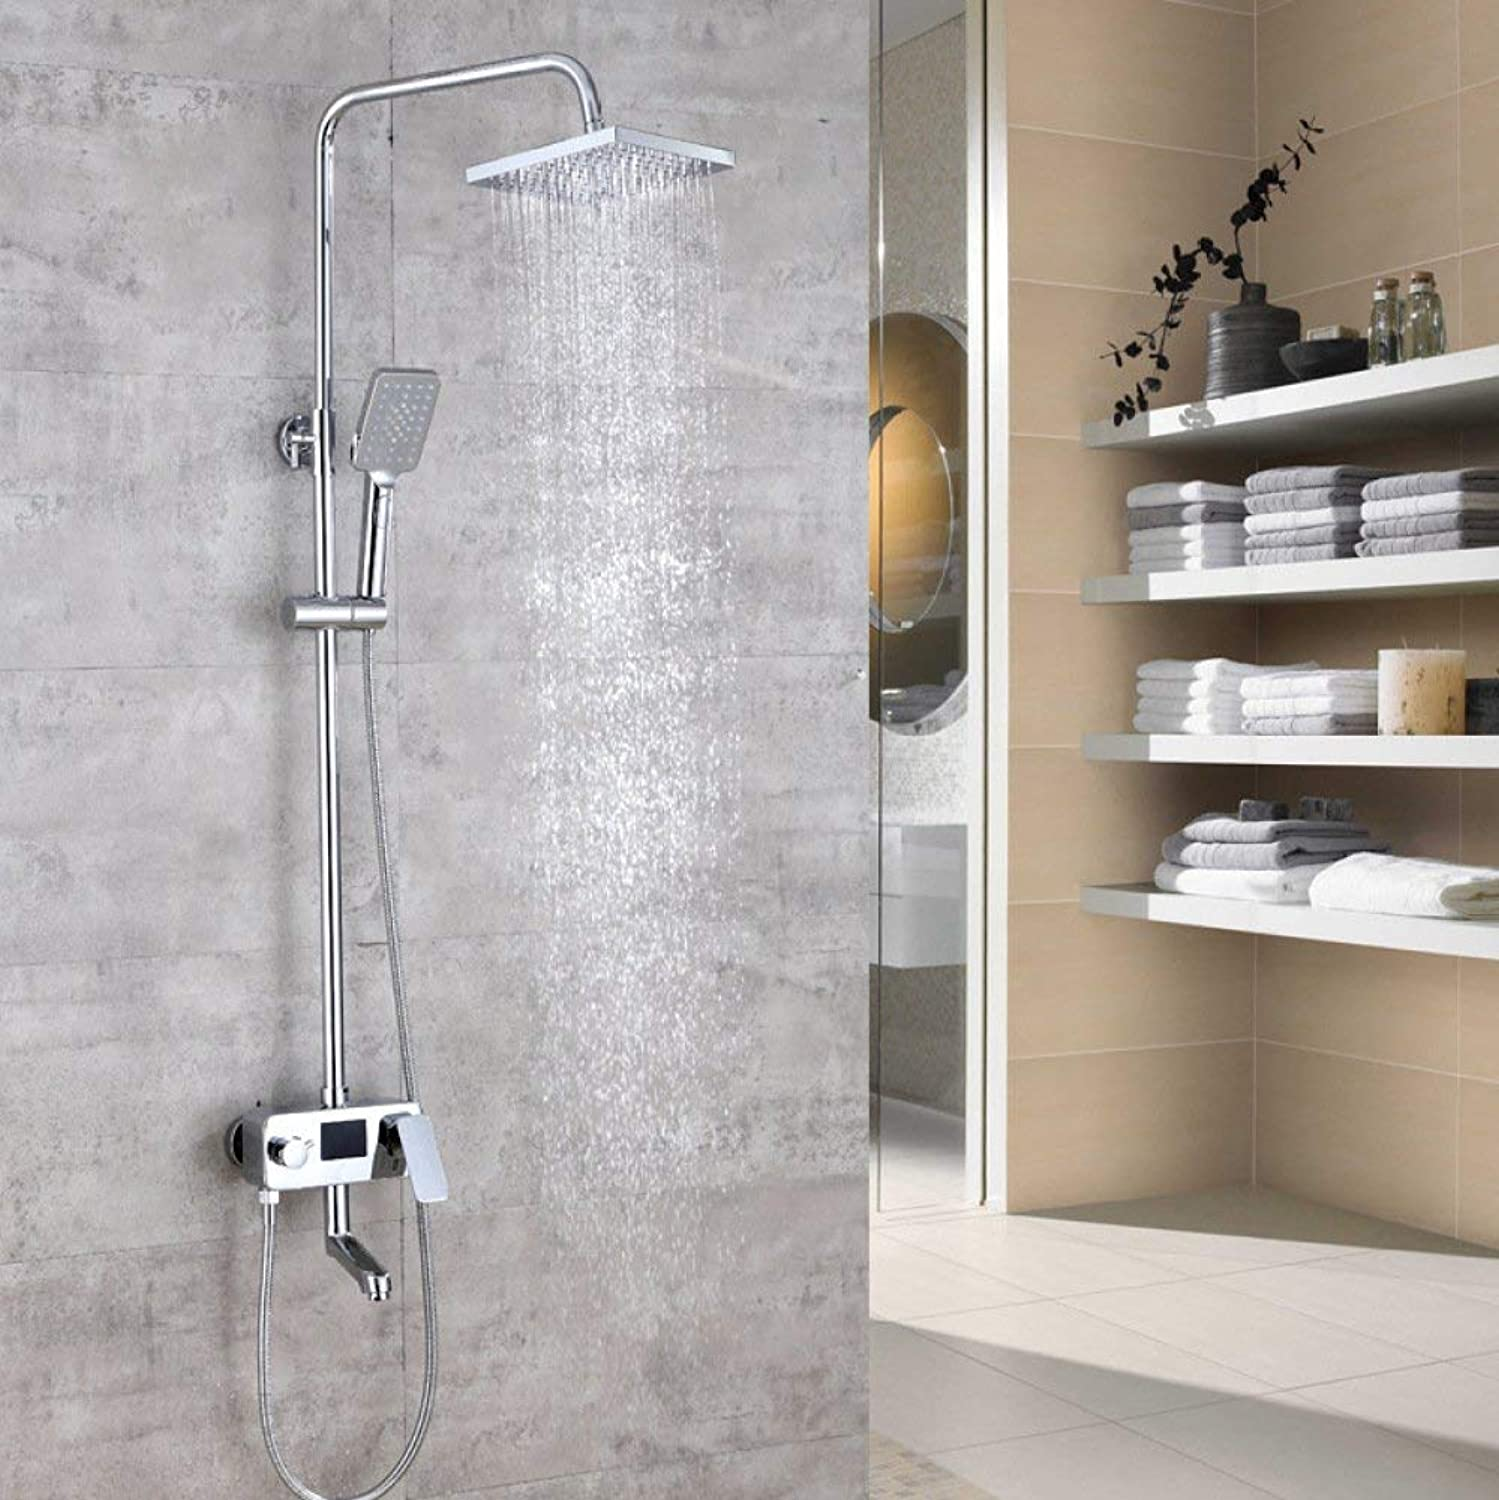 Bathroom Equipment Shower kitCopperLift Hot Shower setDigital Significant Top GearHot \\ u0026 Cold Mixing Faucet